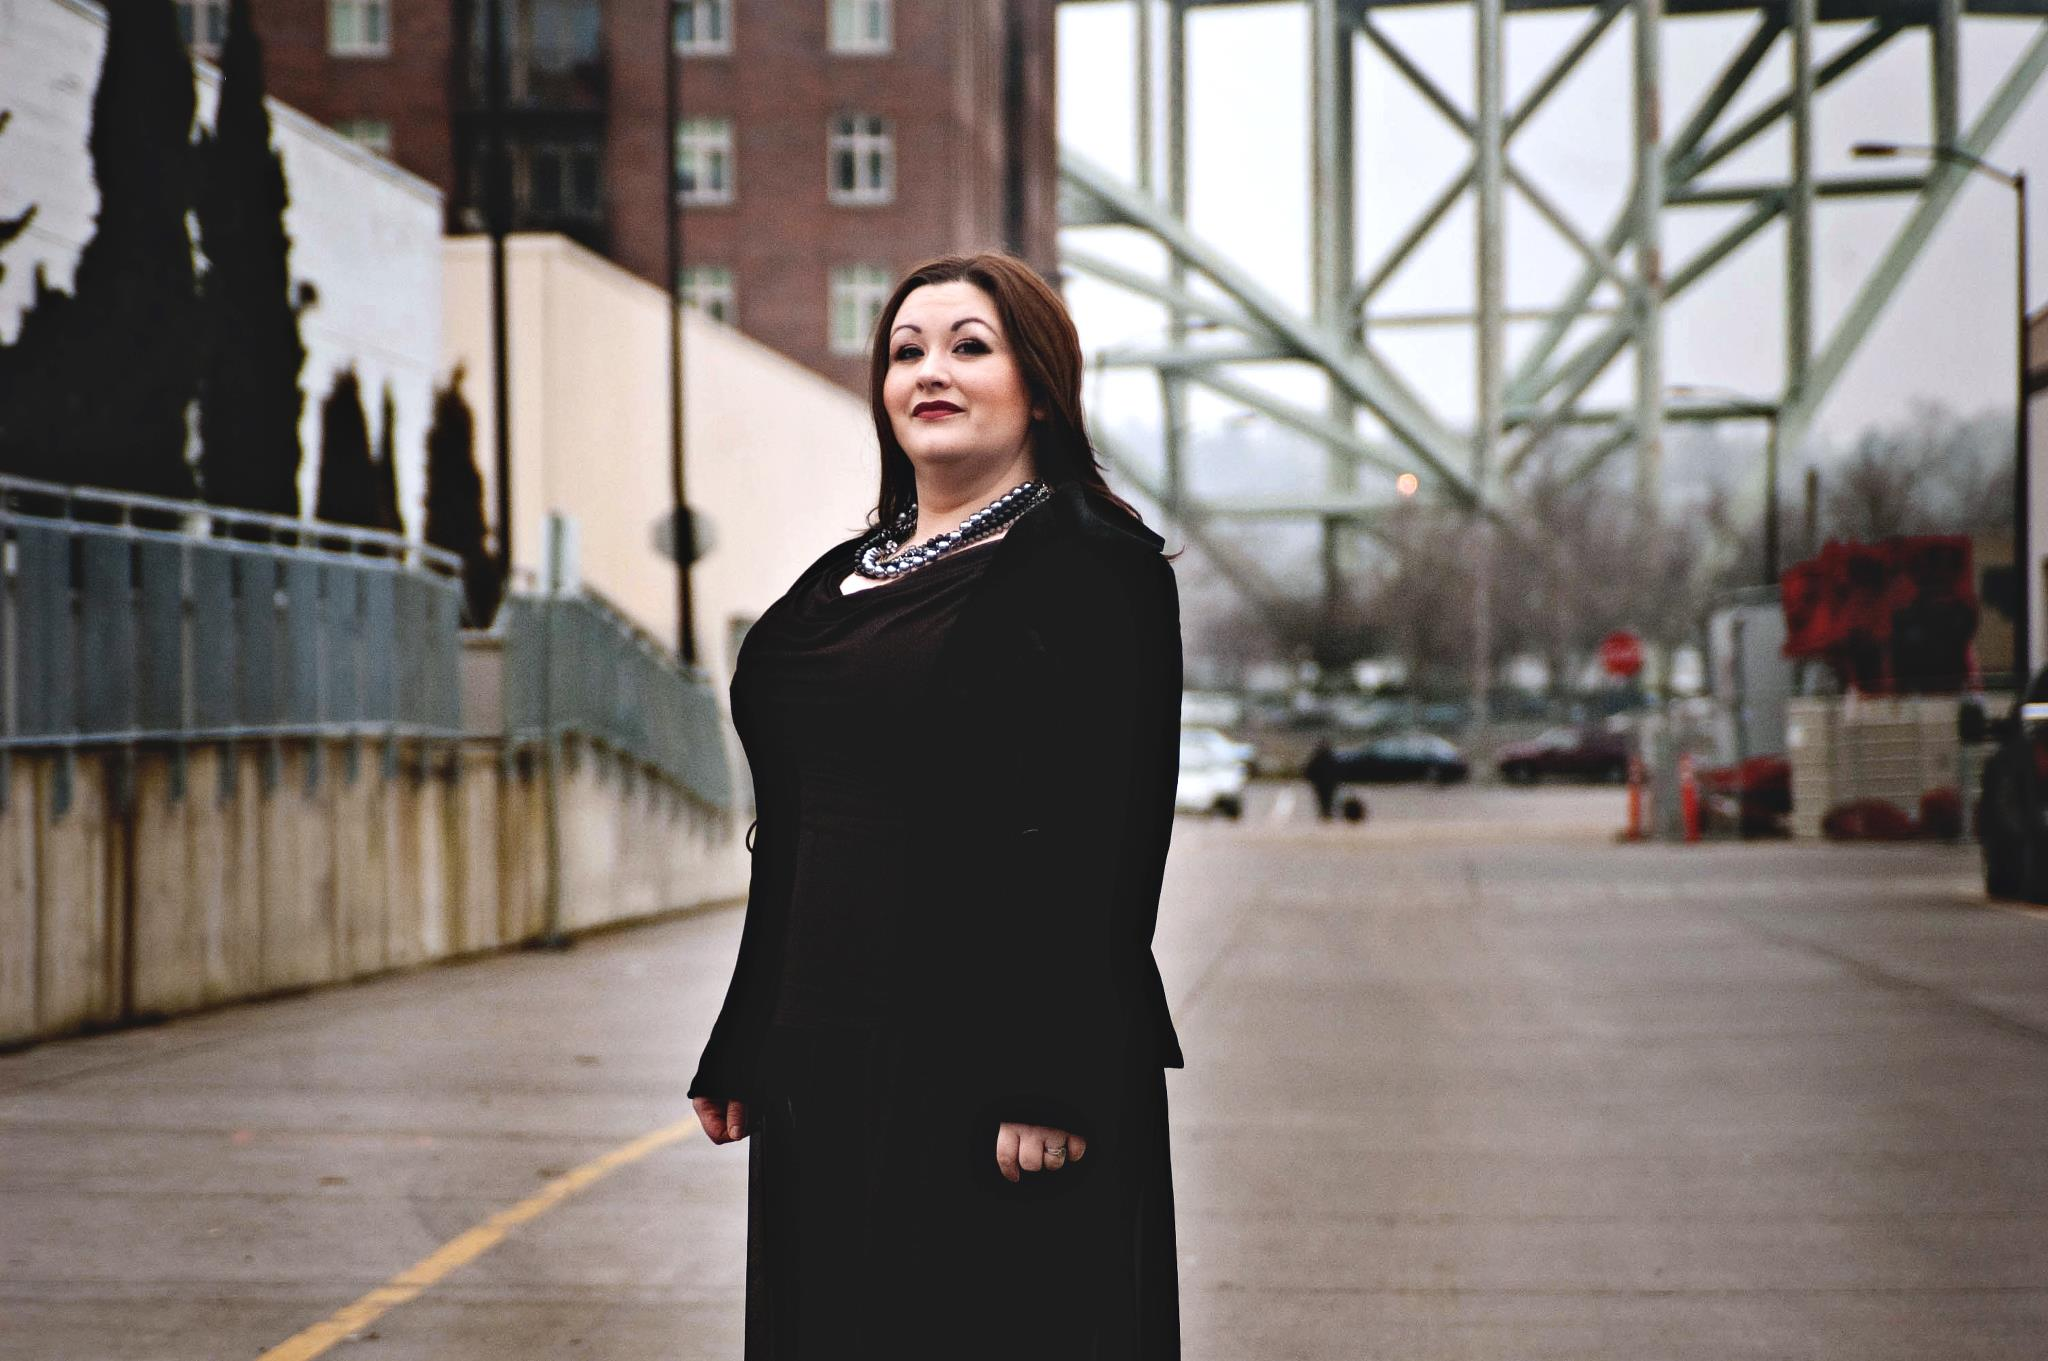 Performance - A native of the Pacific Northwest, dramatic soprano Erin G. McCarthy is a dynamic performer who brings a steely, soaring voice and an